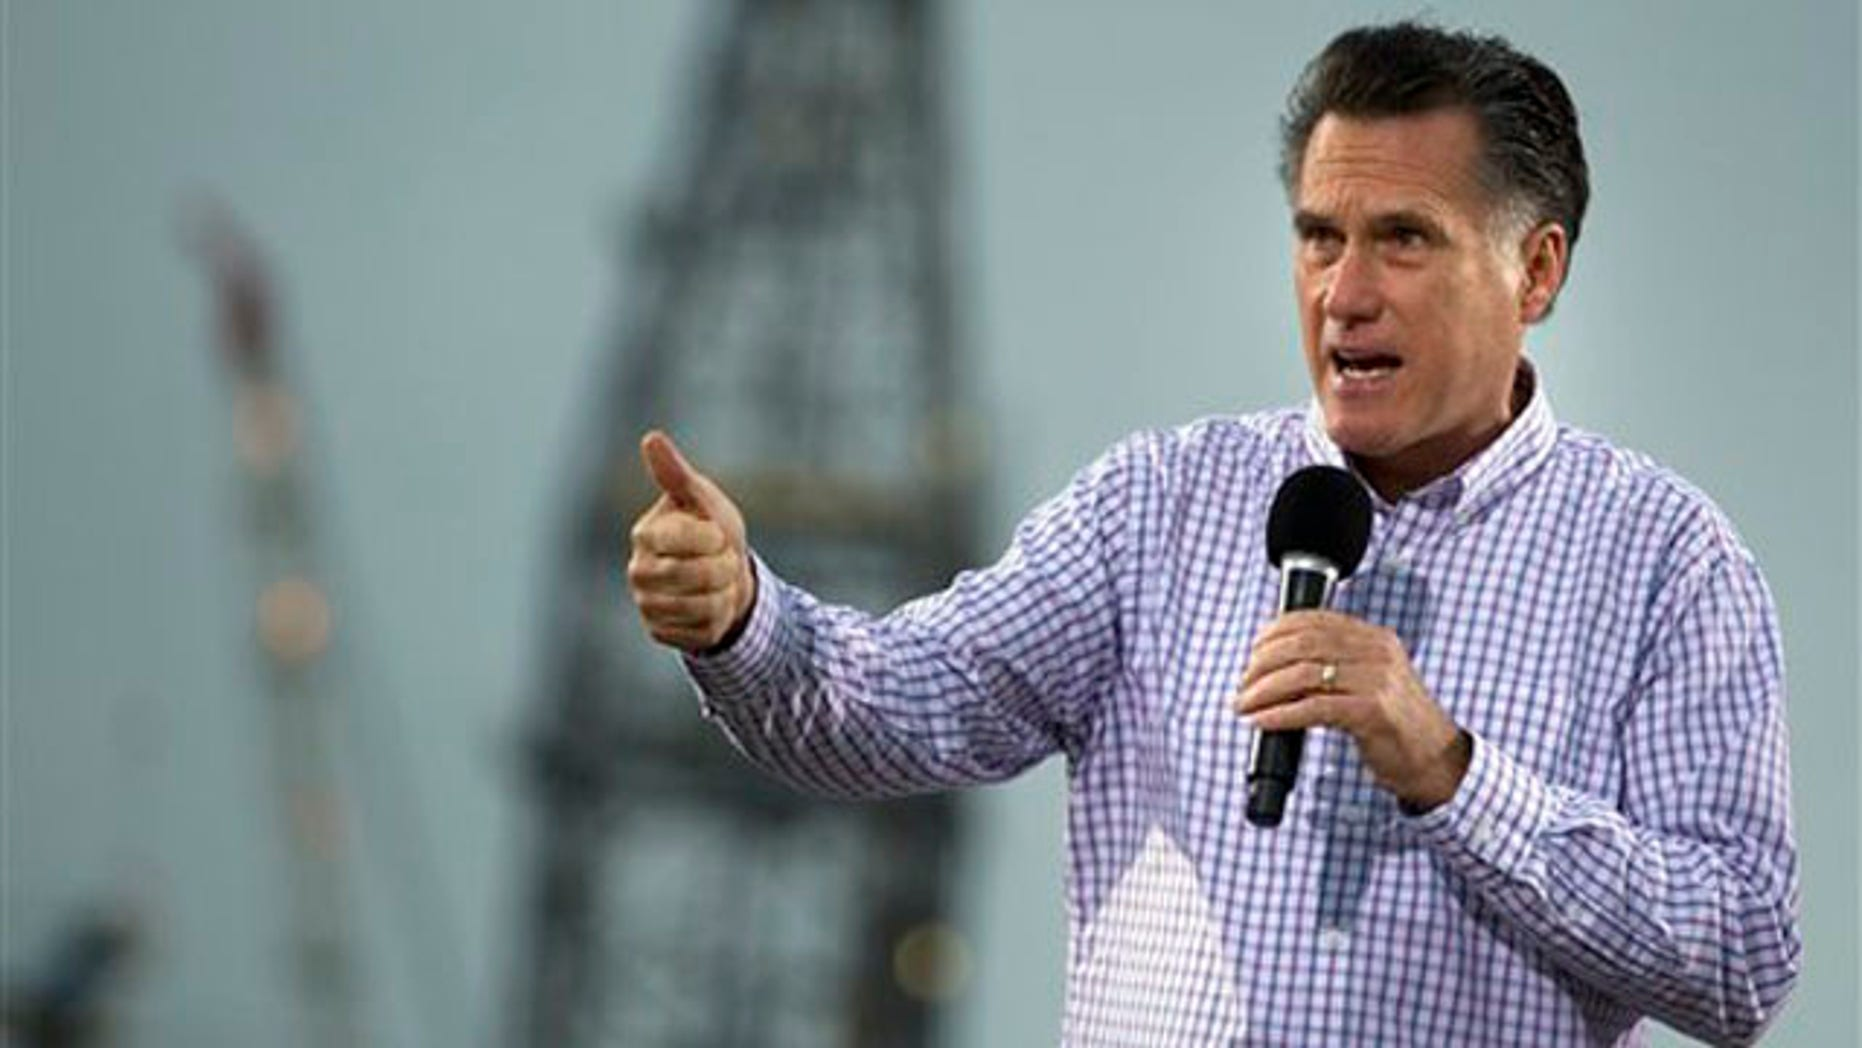 March 8, 2012: Mitt Romney speaks during a campaign stop at the Port of Pascagoula in Pascagoula, Miss.